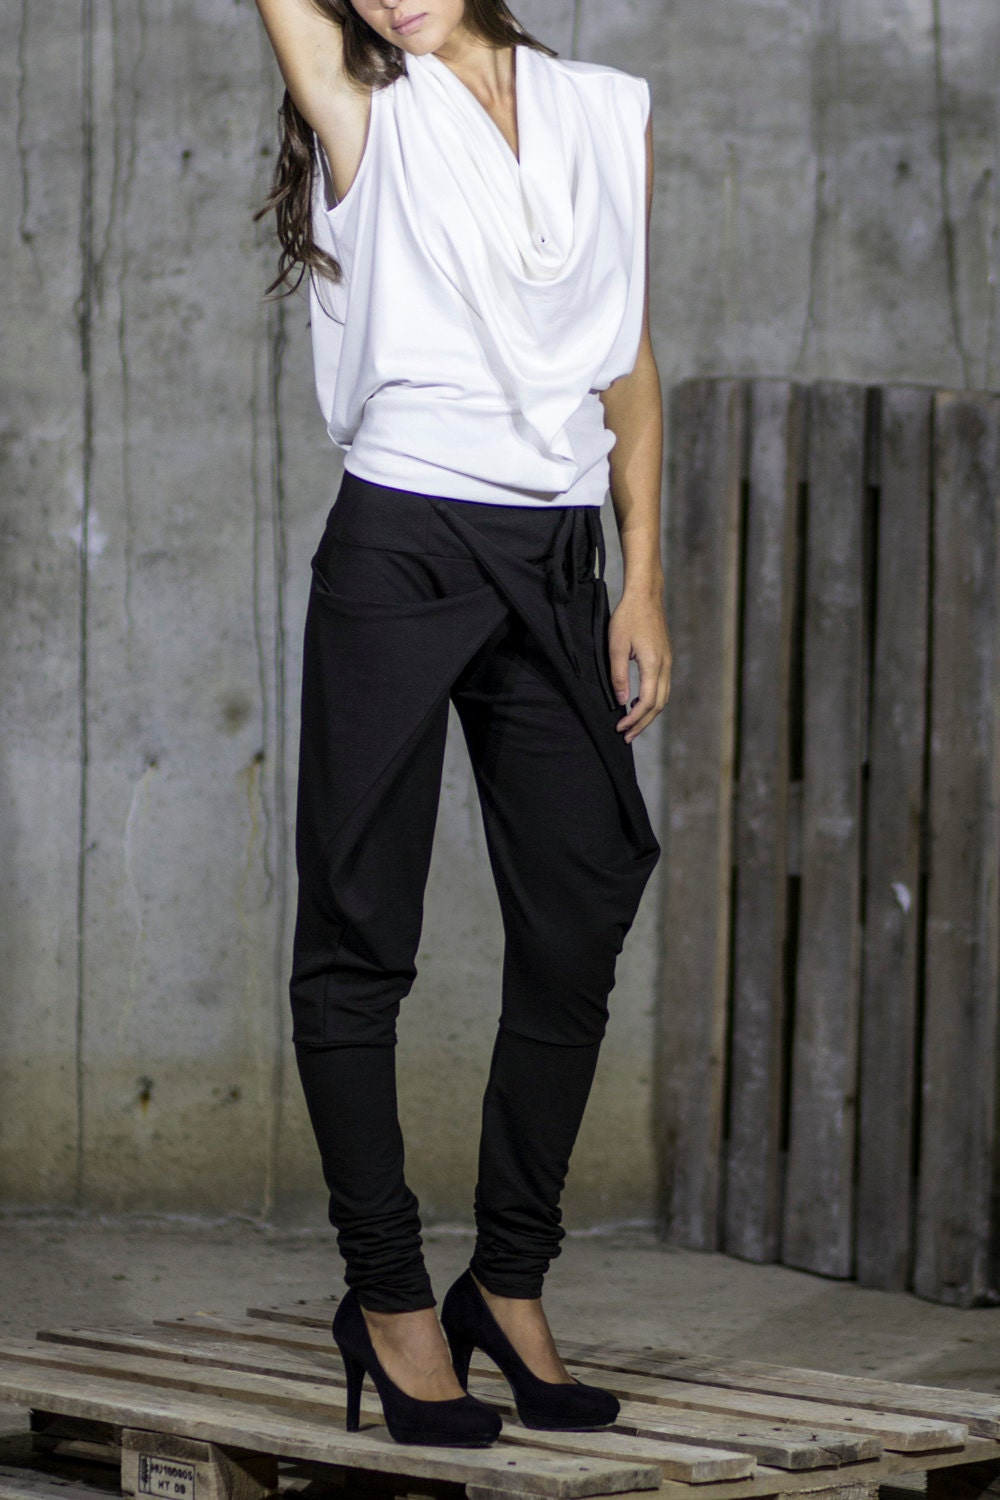 Black Extravagant Harem Pants  Drop Crotch Tapered Pants  Wrap Front Trousers  Criss Cross Tight Trousers by Silvia Monetti